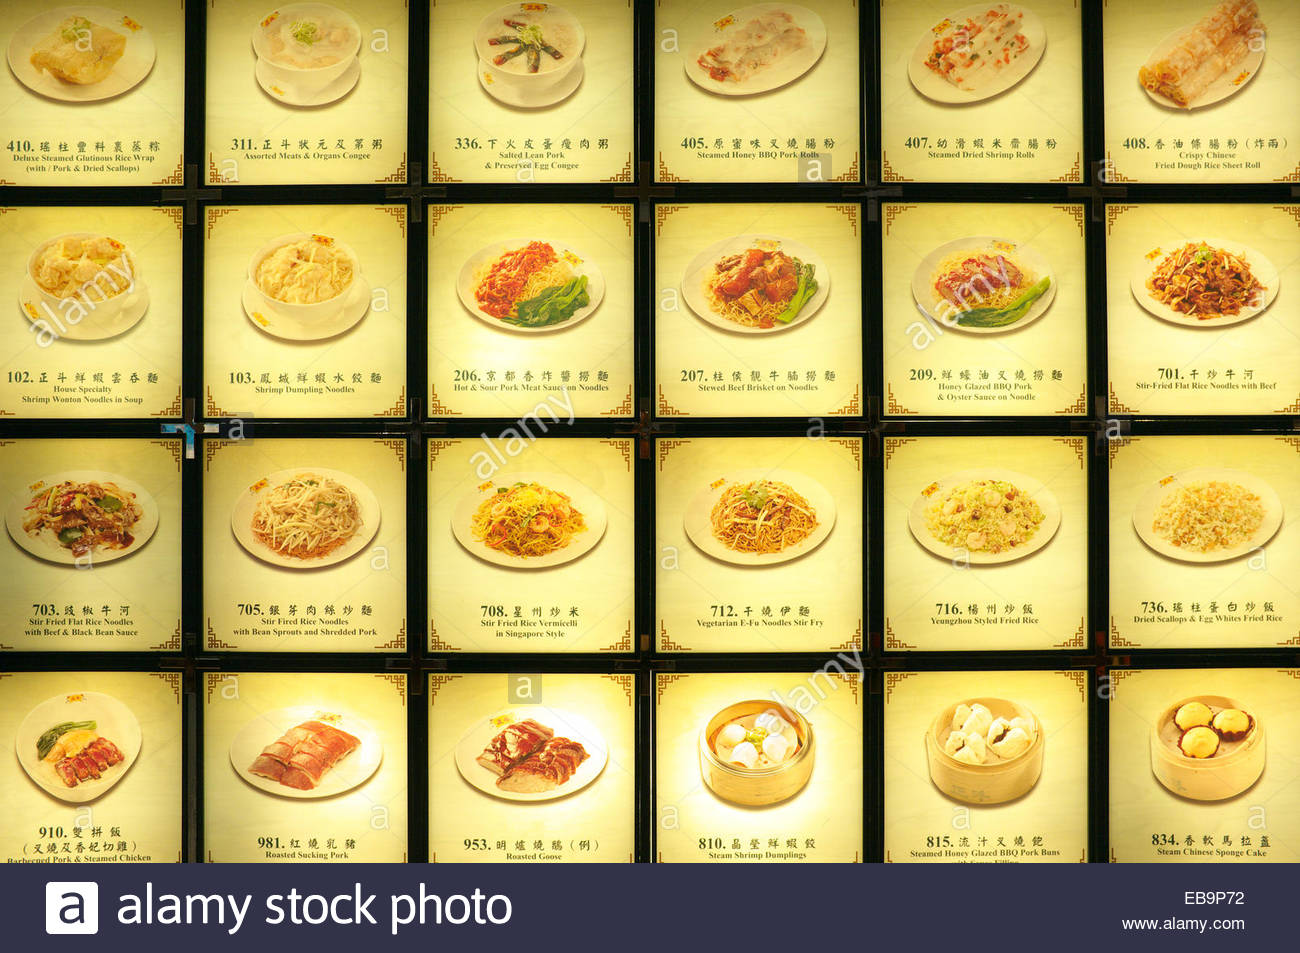 Menu display made of of individual light panels, at Hong Kong Airport, HK, China. - Stock Image